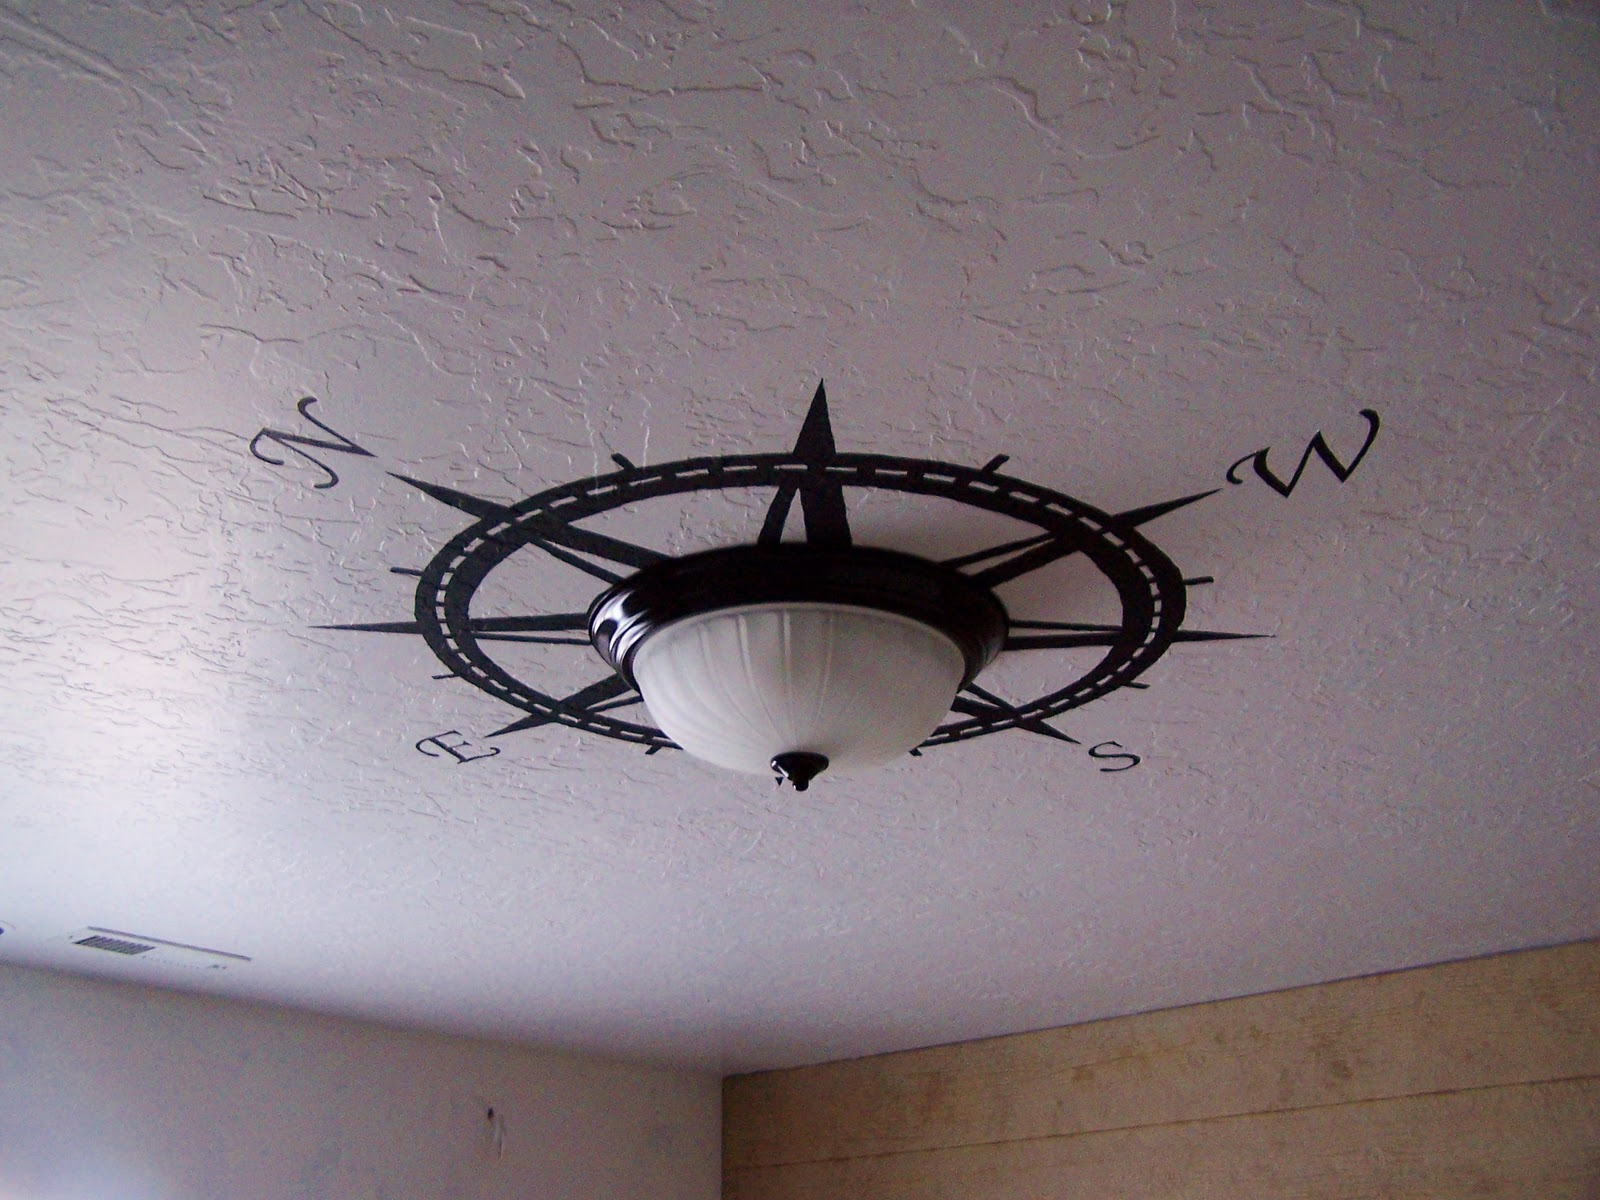 Batchelors Way Up date on Pirate Room Walls and Ceiling